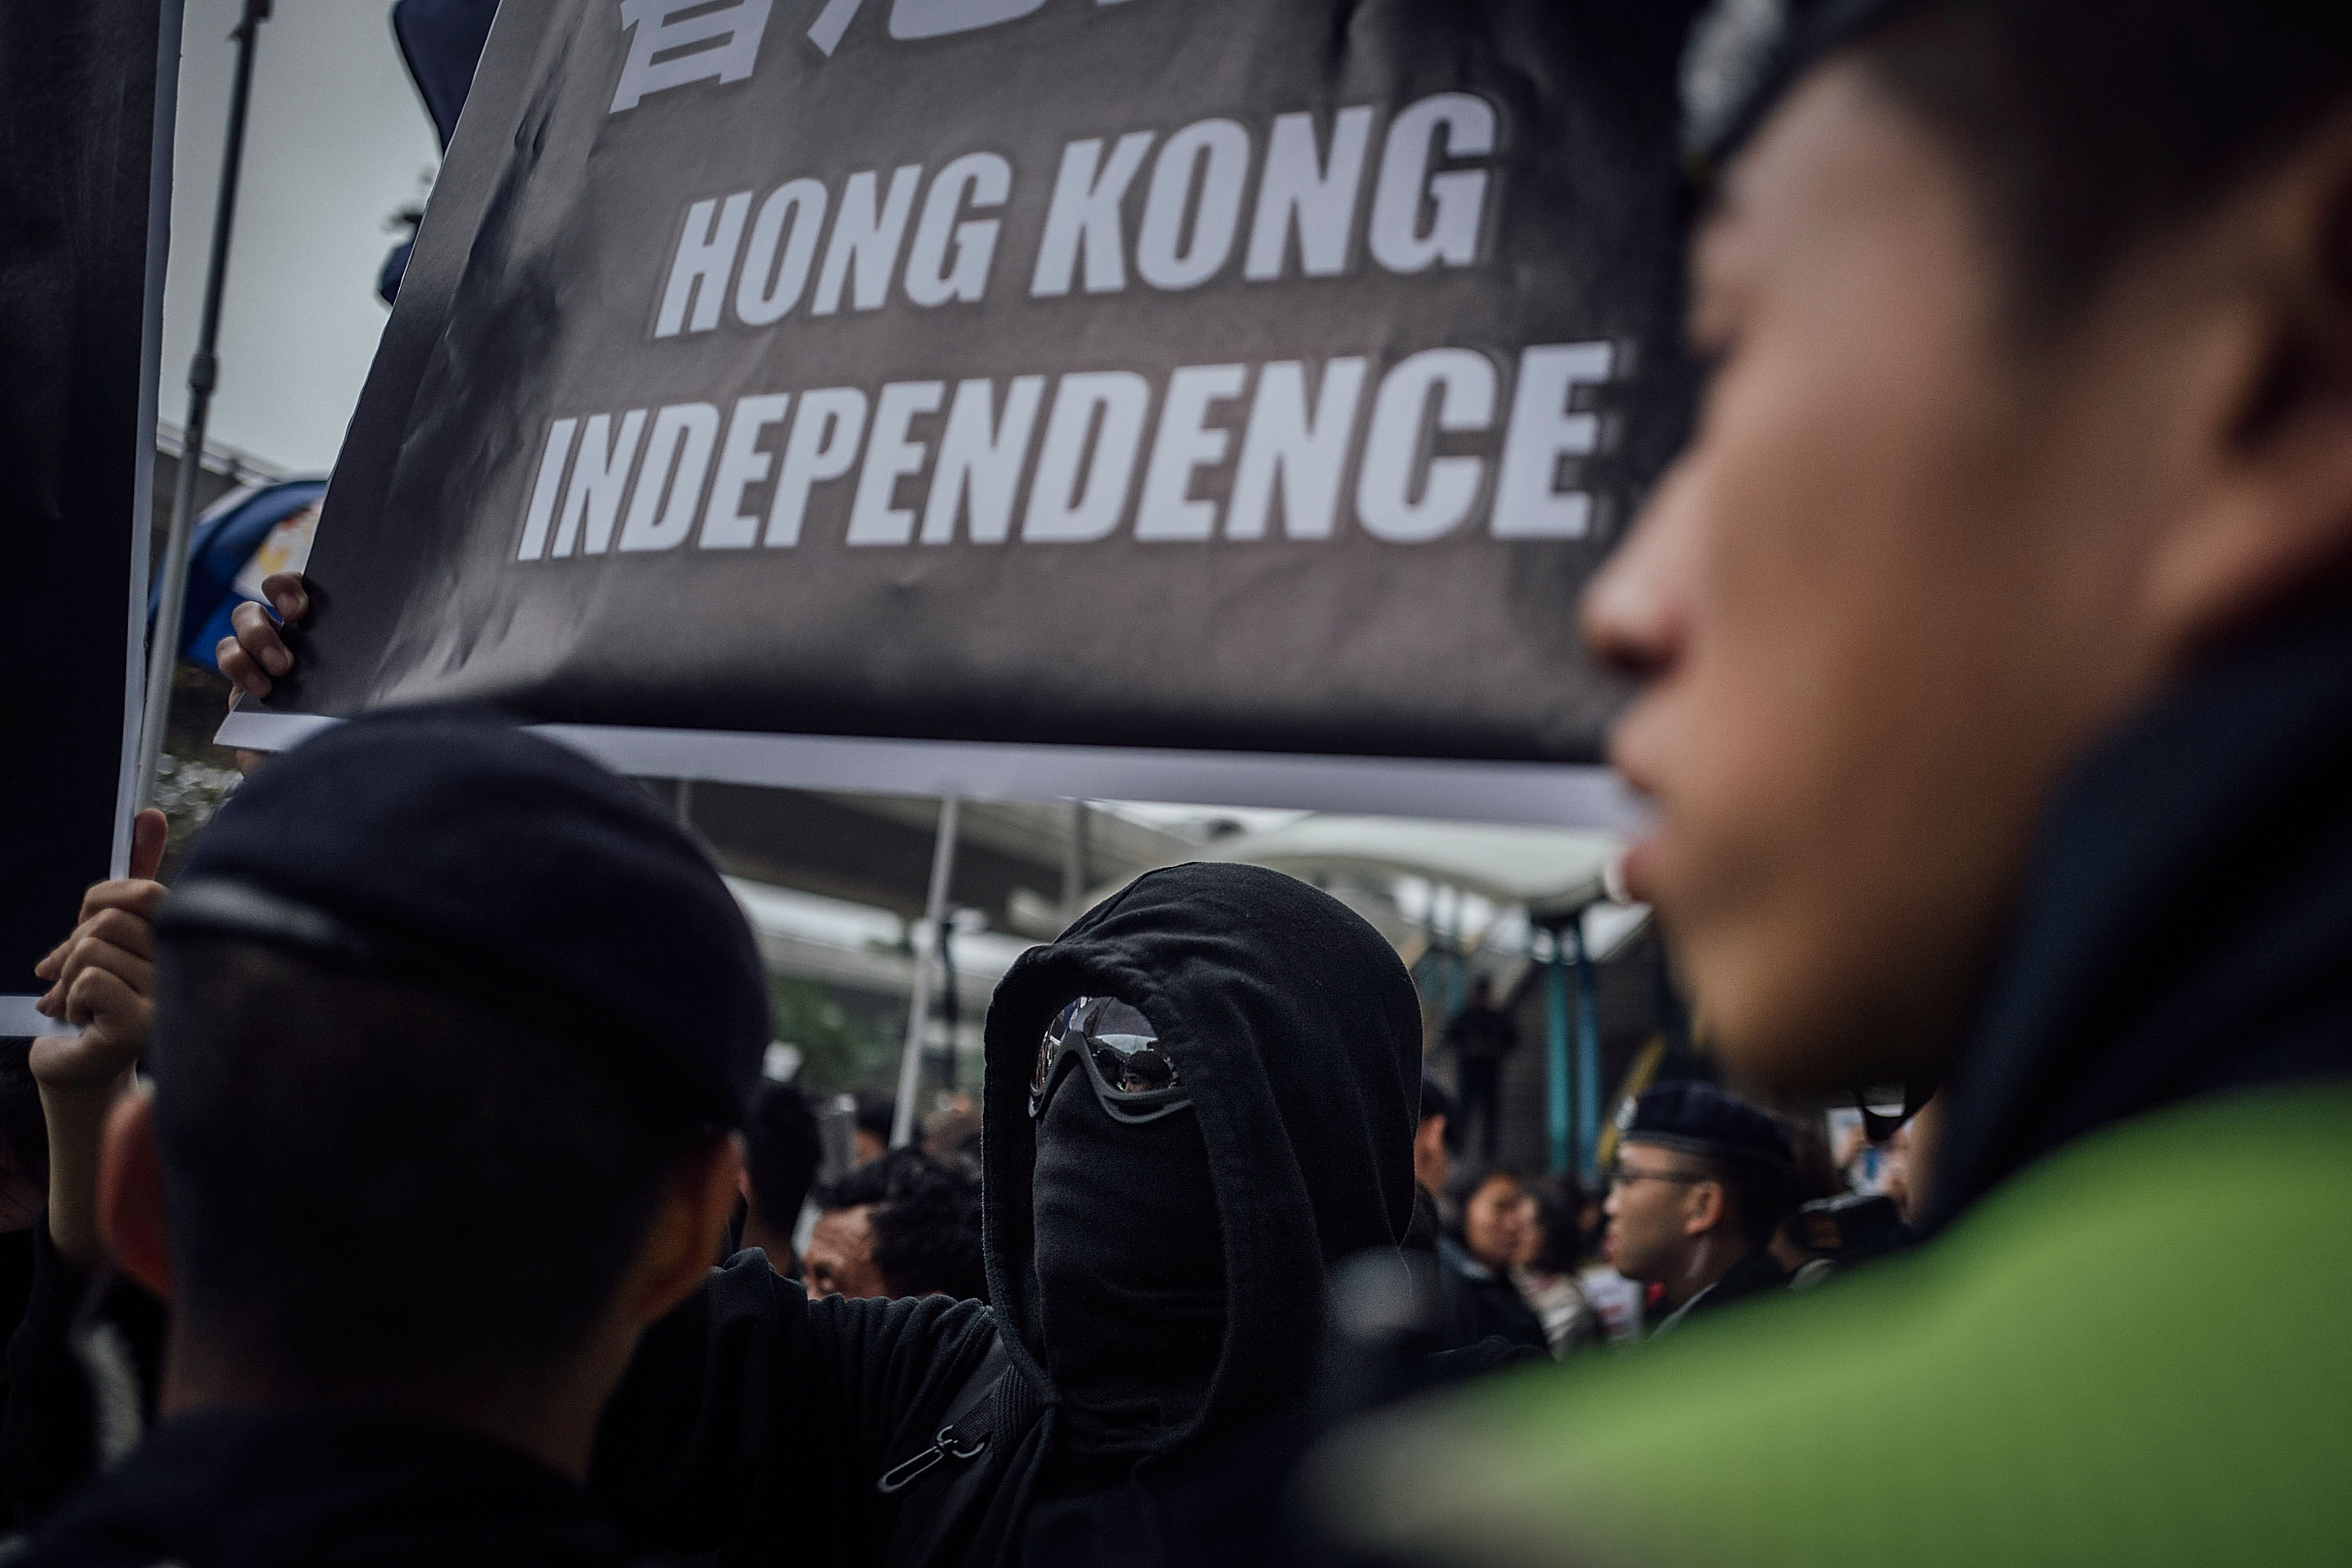 People hold placards and shout slogans as they take part in a rally on a street on Jan. 10, 2016, in Hong Kong over five missing booksellers